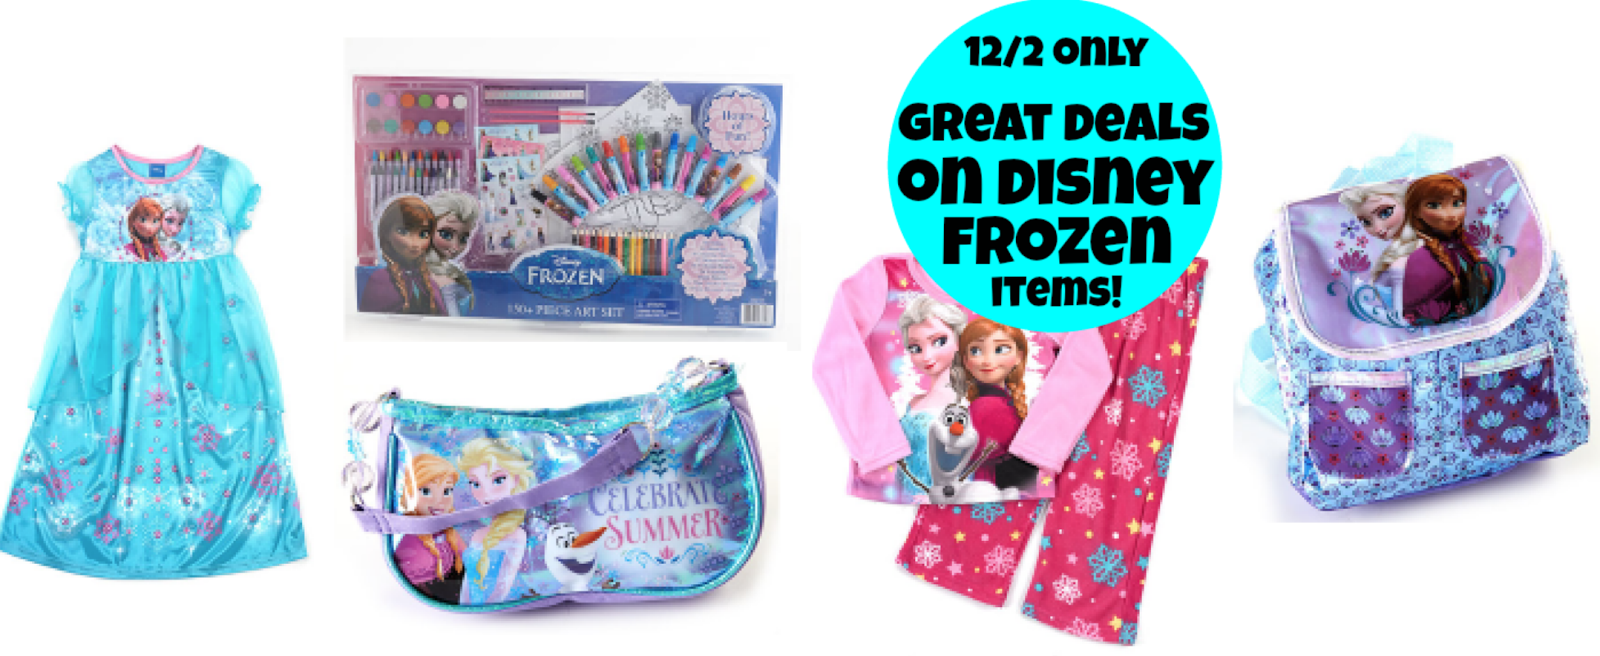 http://www.thebinderladies.com/2014/12/boscovs-awesome-deals-on-disney-frozen.html